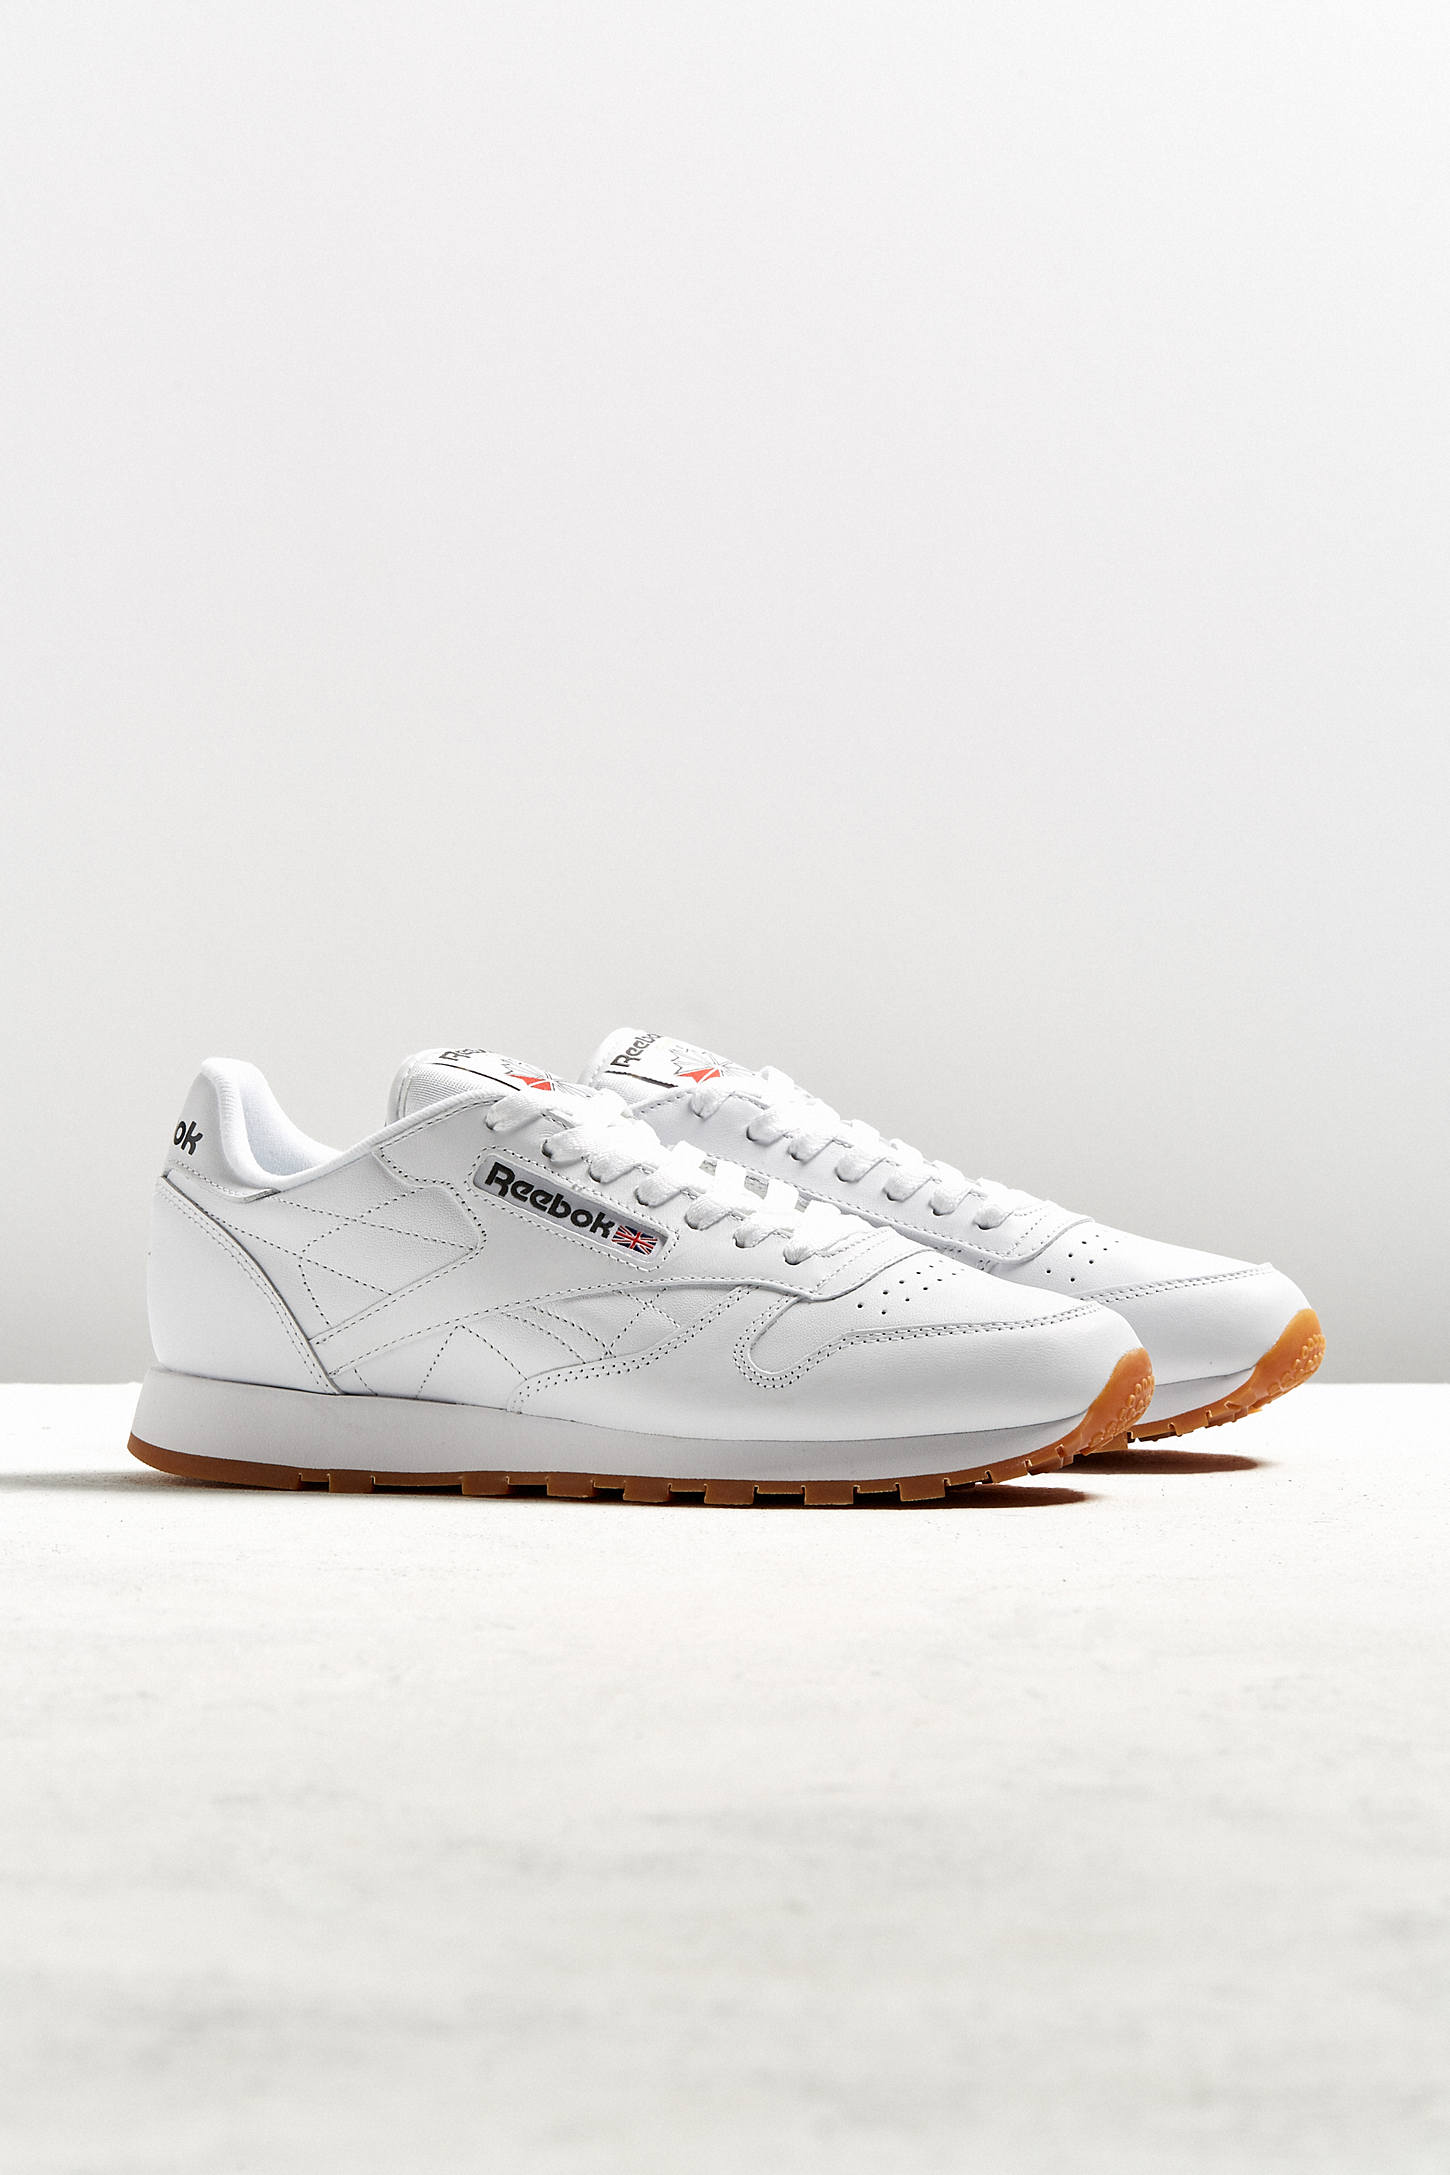 reebok classic white leather gum sole trainers